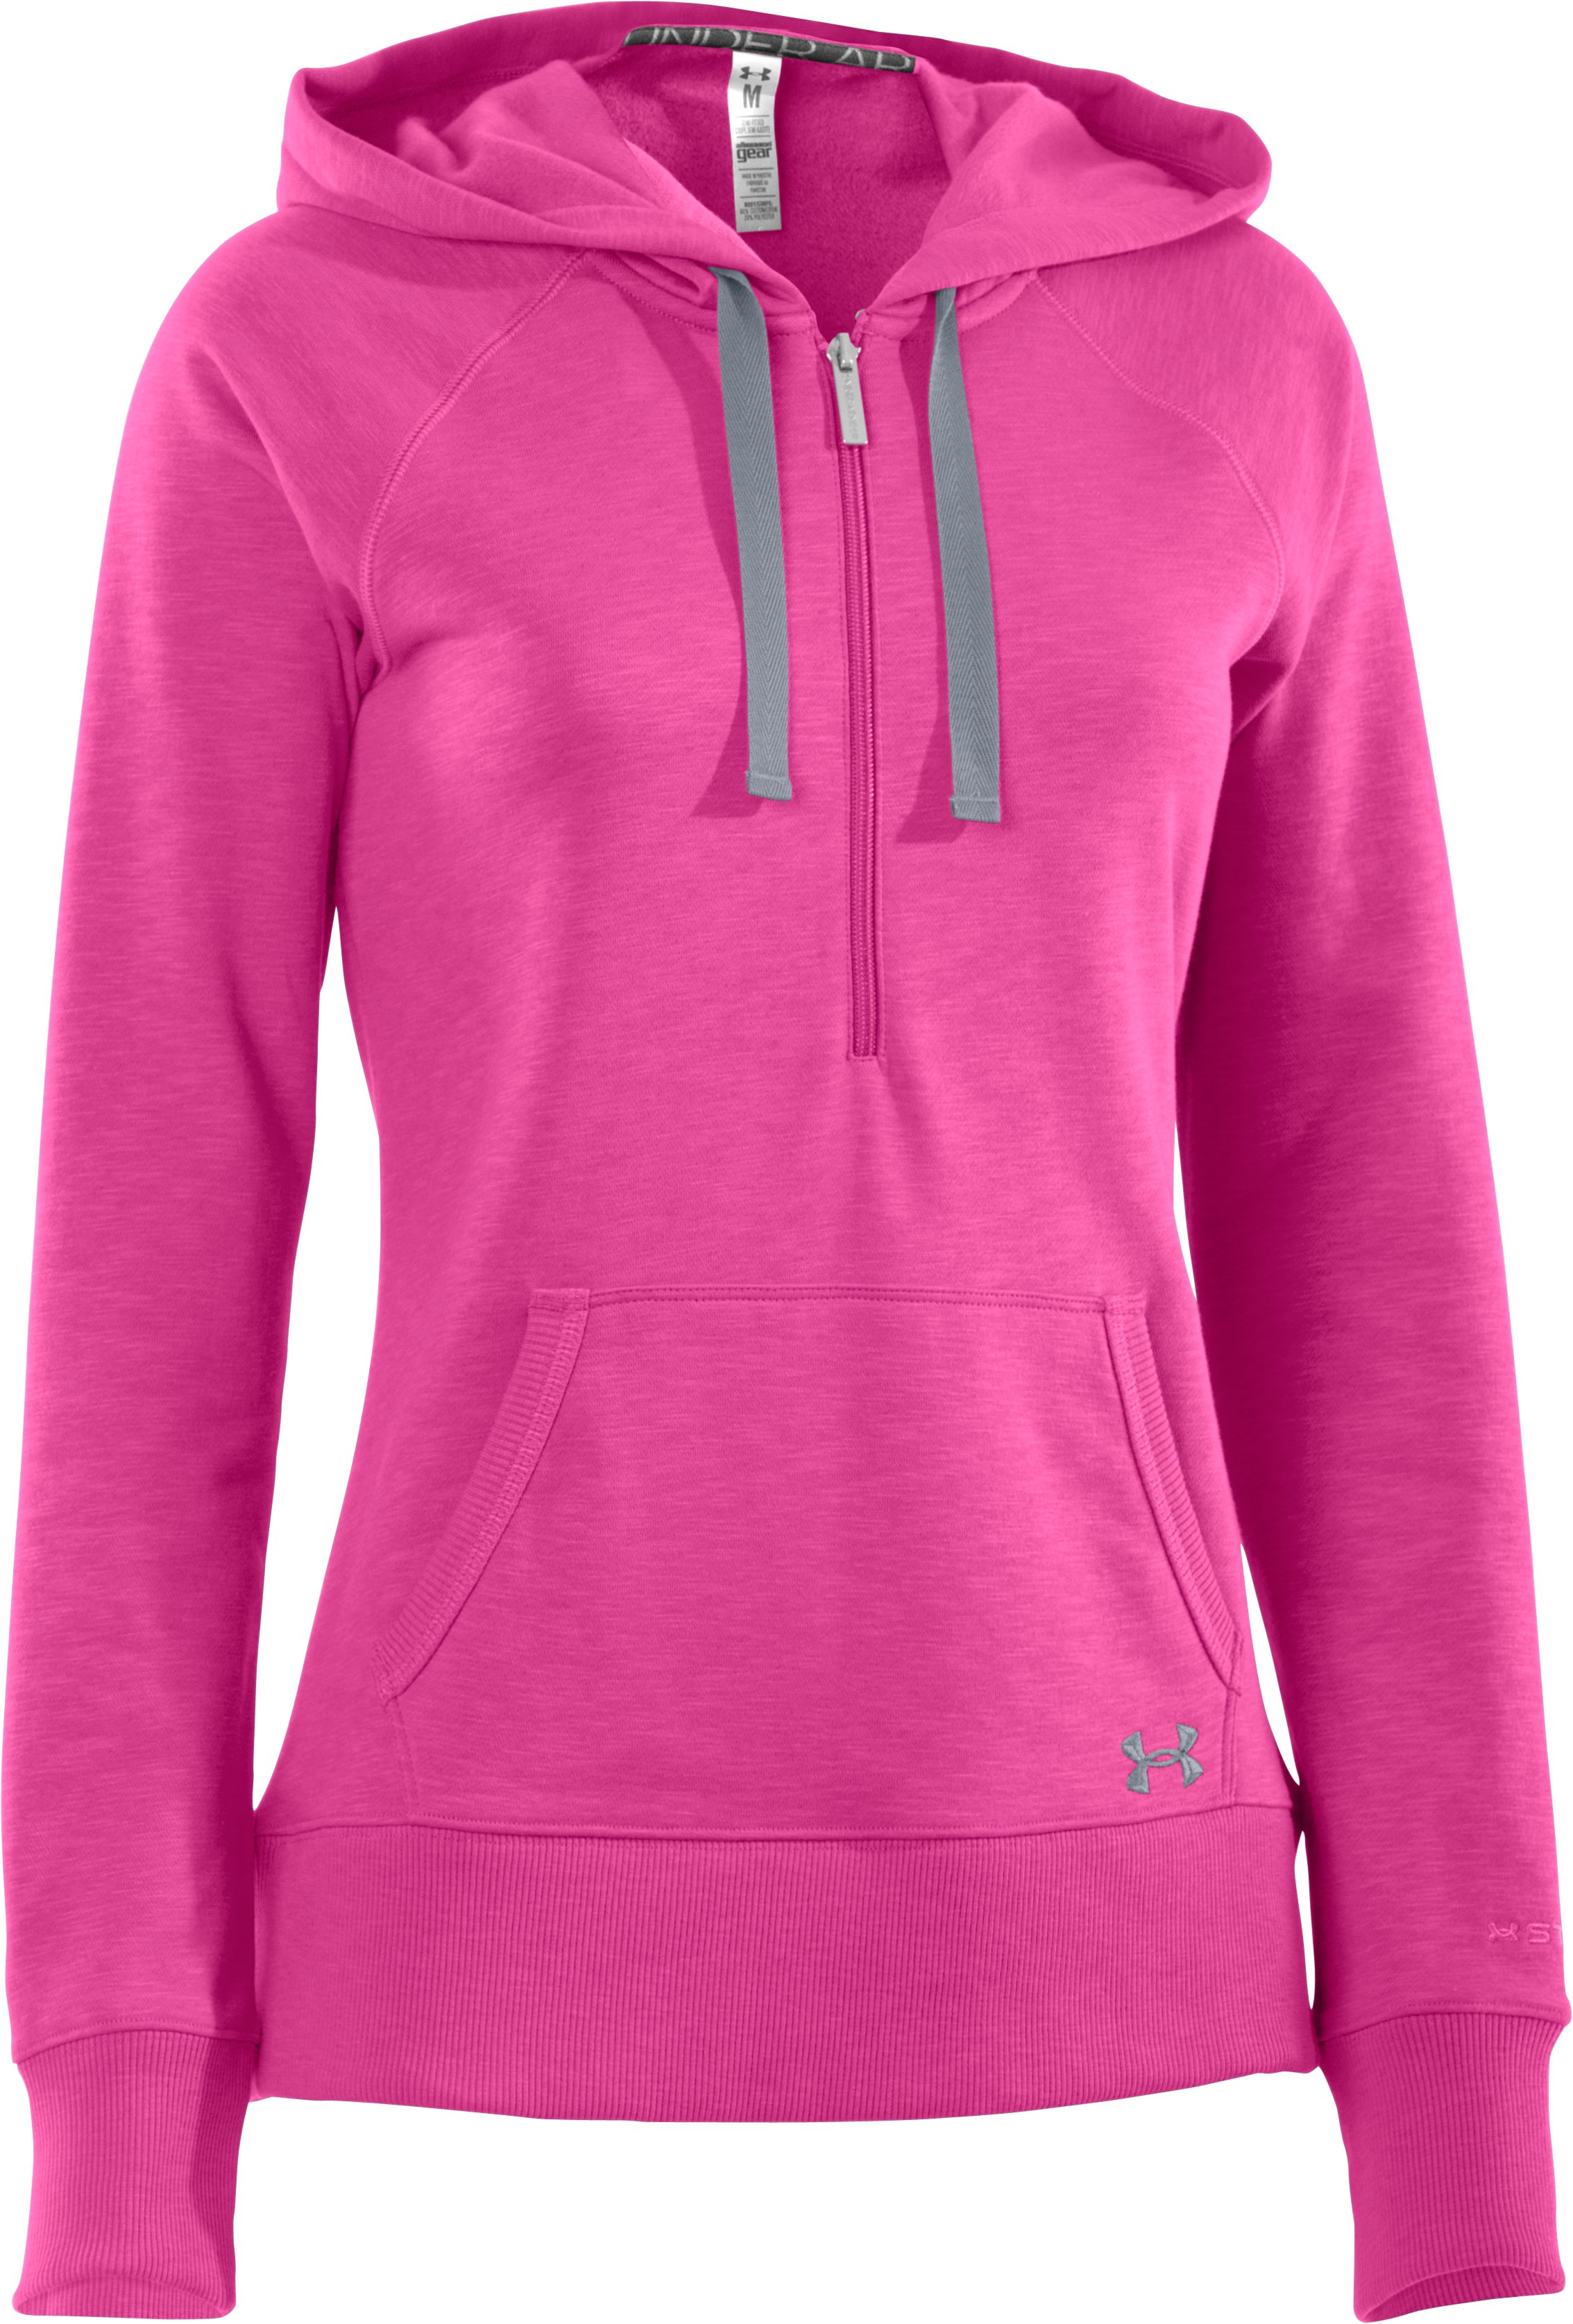 Women's Charged Cotton® Storm Slub Hoodie, Playful